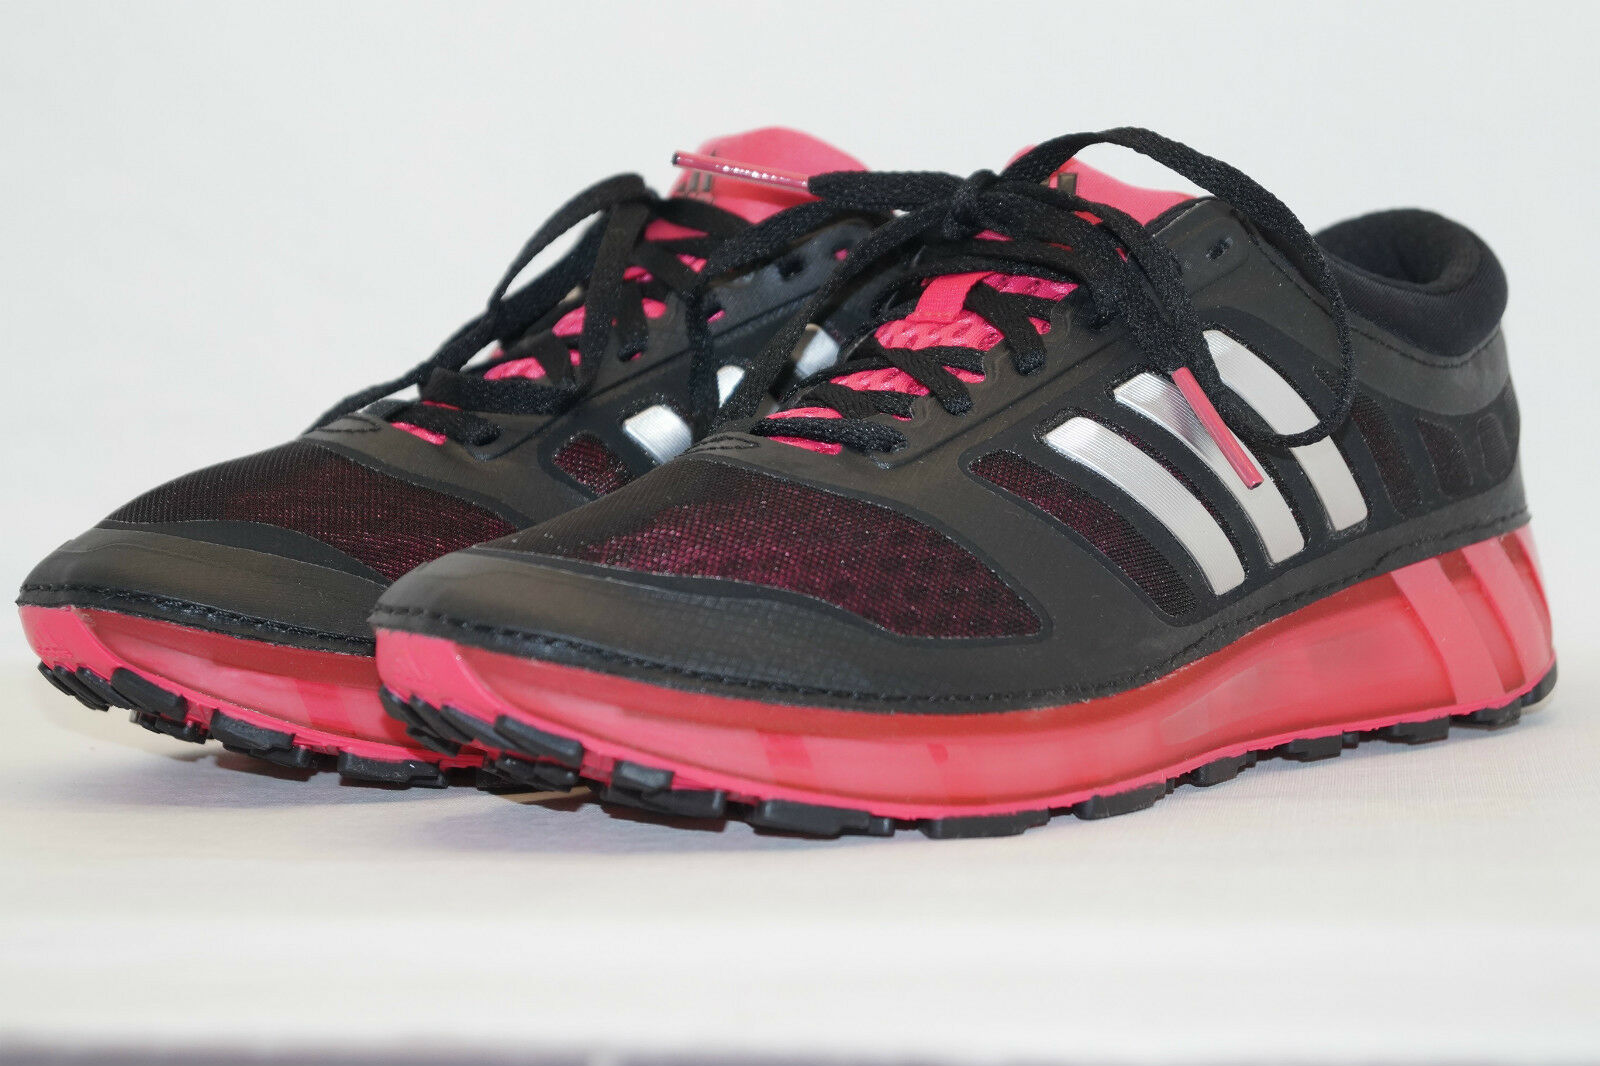 Adidas Cosmic ICE W DAMEN WMNS LAUF JOGGING SCHUHE Gr.38 1 3 UK.5,5 black pink